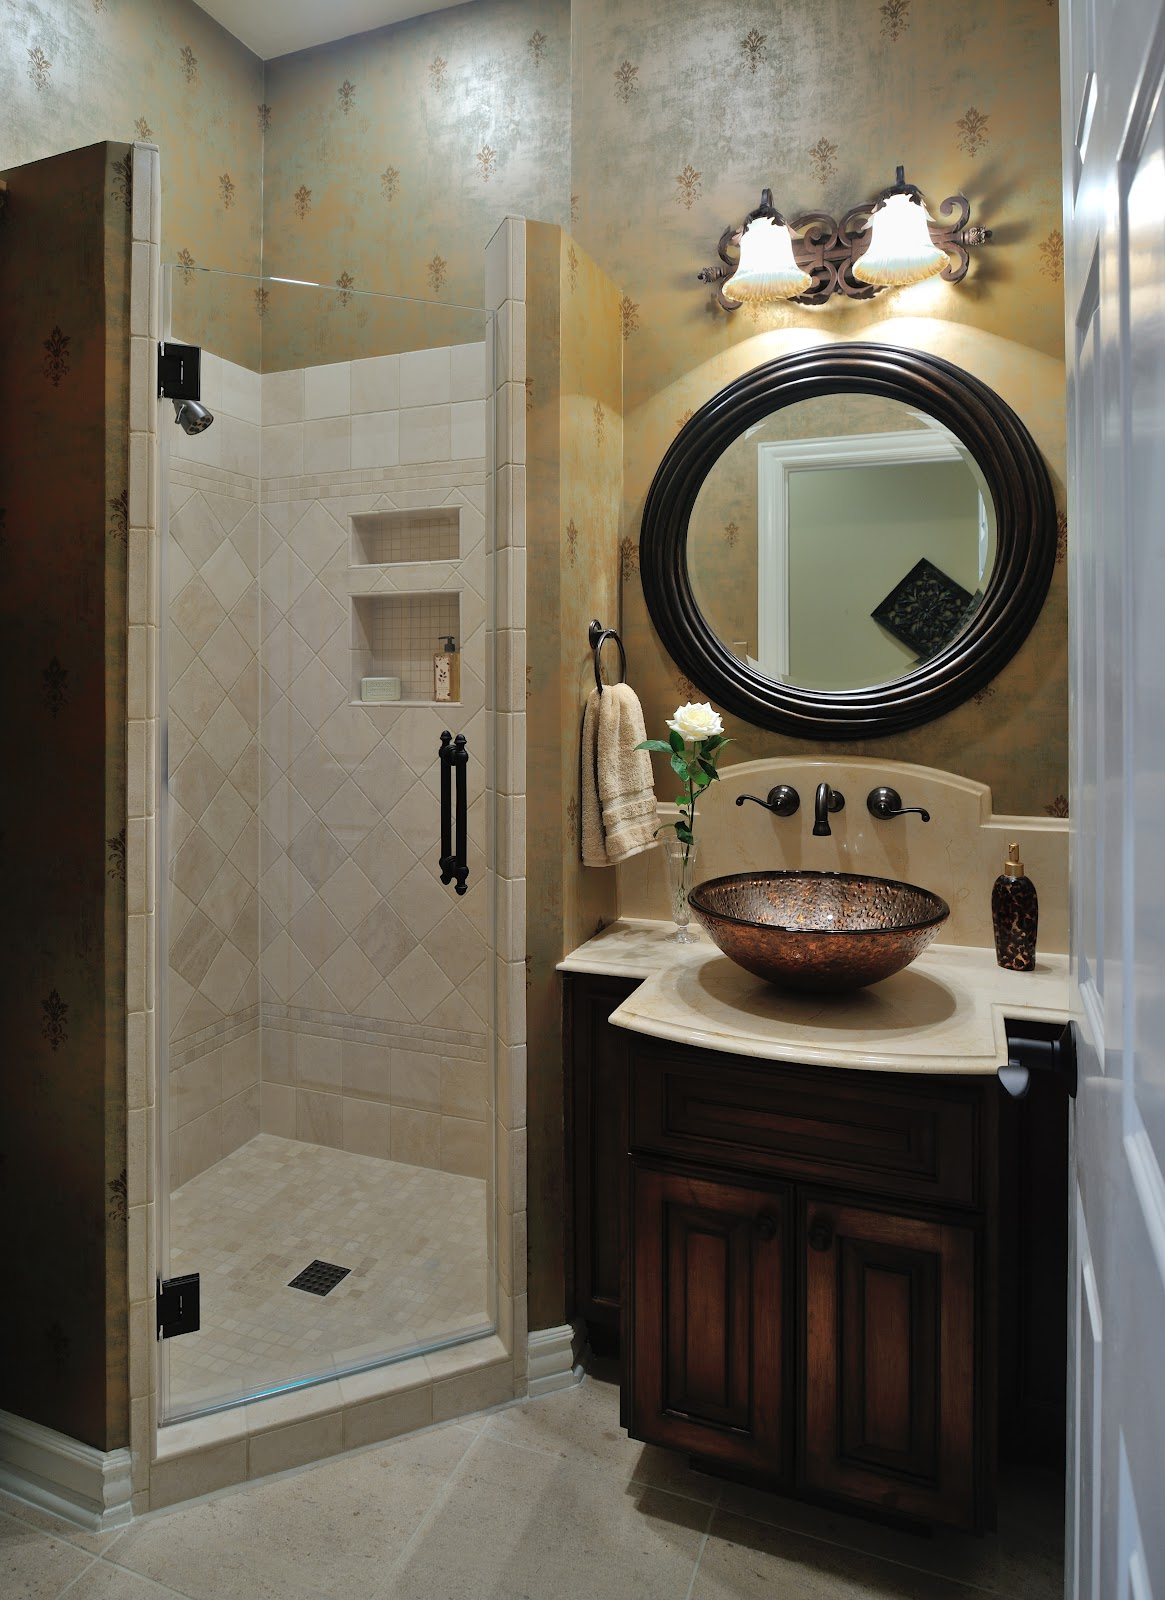 Design in the woods powder room remodel Small bathroom remodel designs